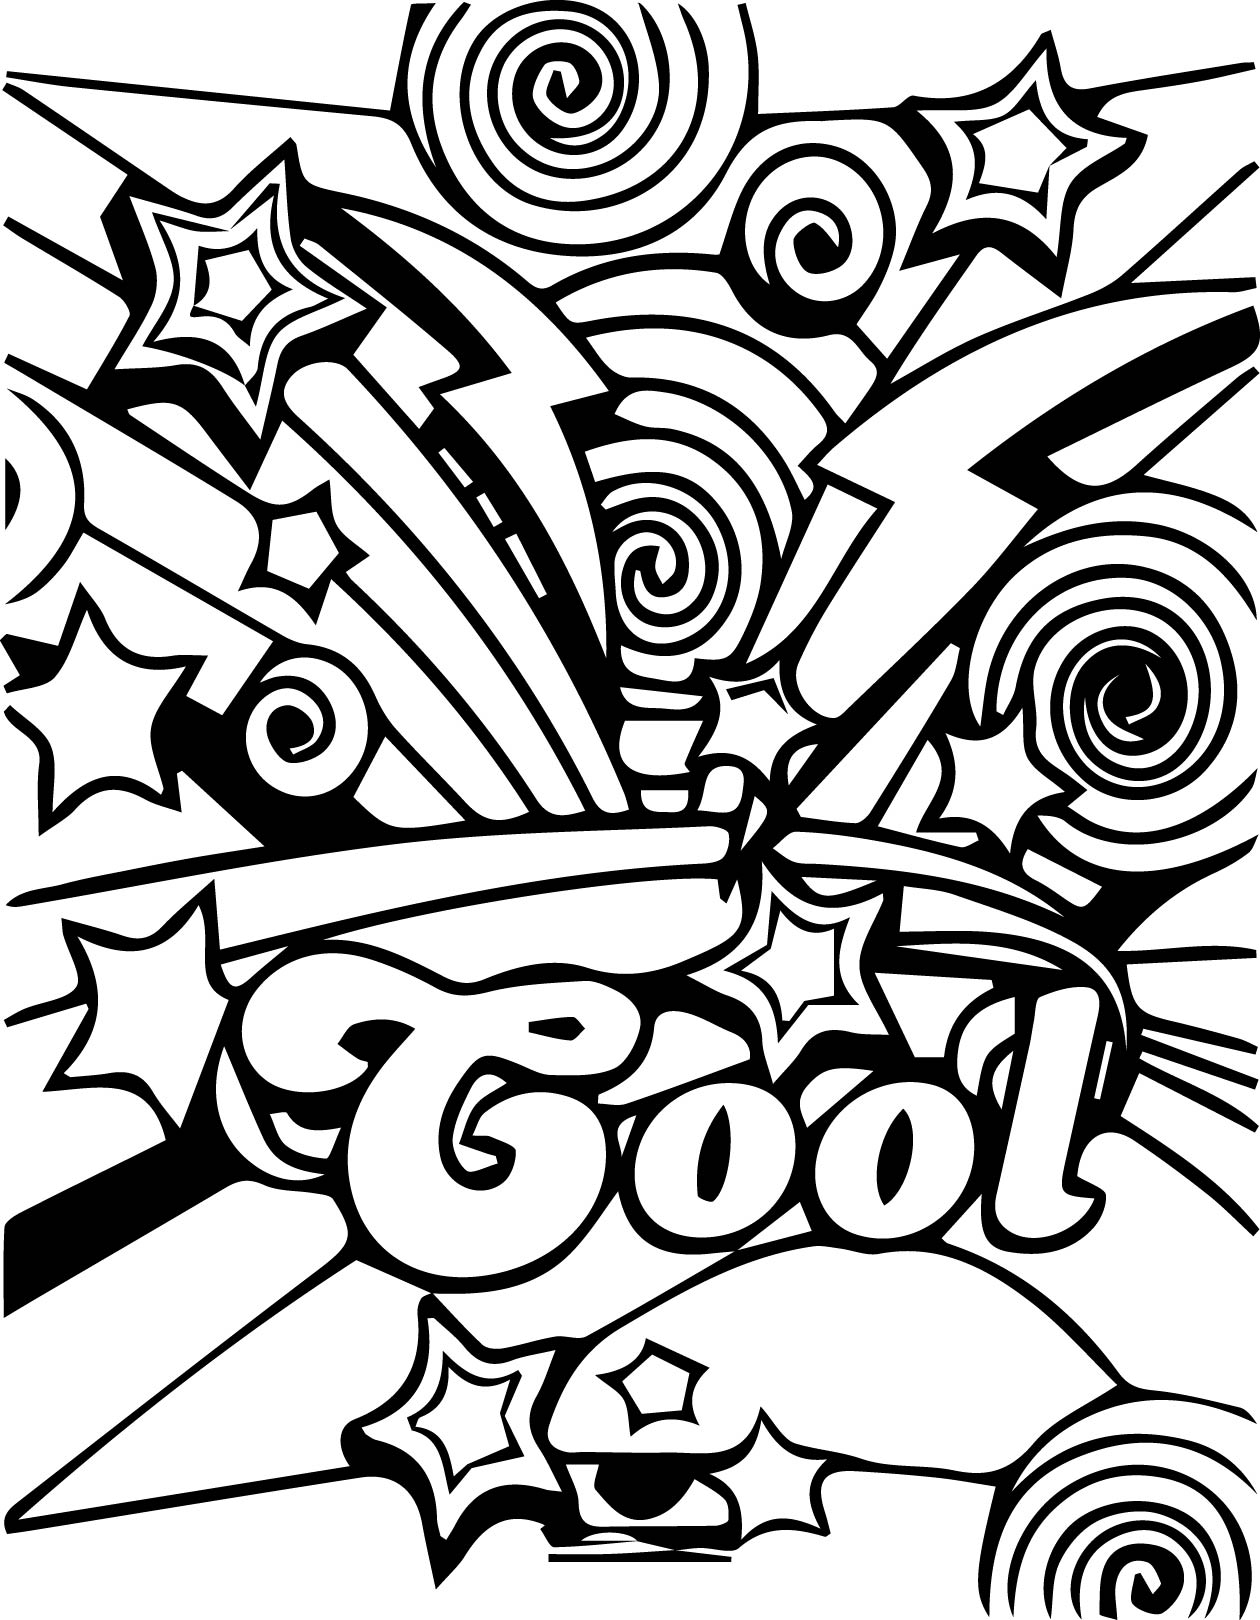 full size coloring sheets full size coloring pages for adults at getdrawings free full coloring sheets size